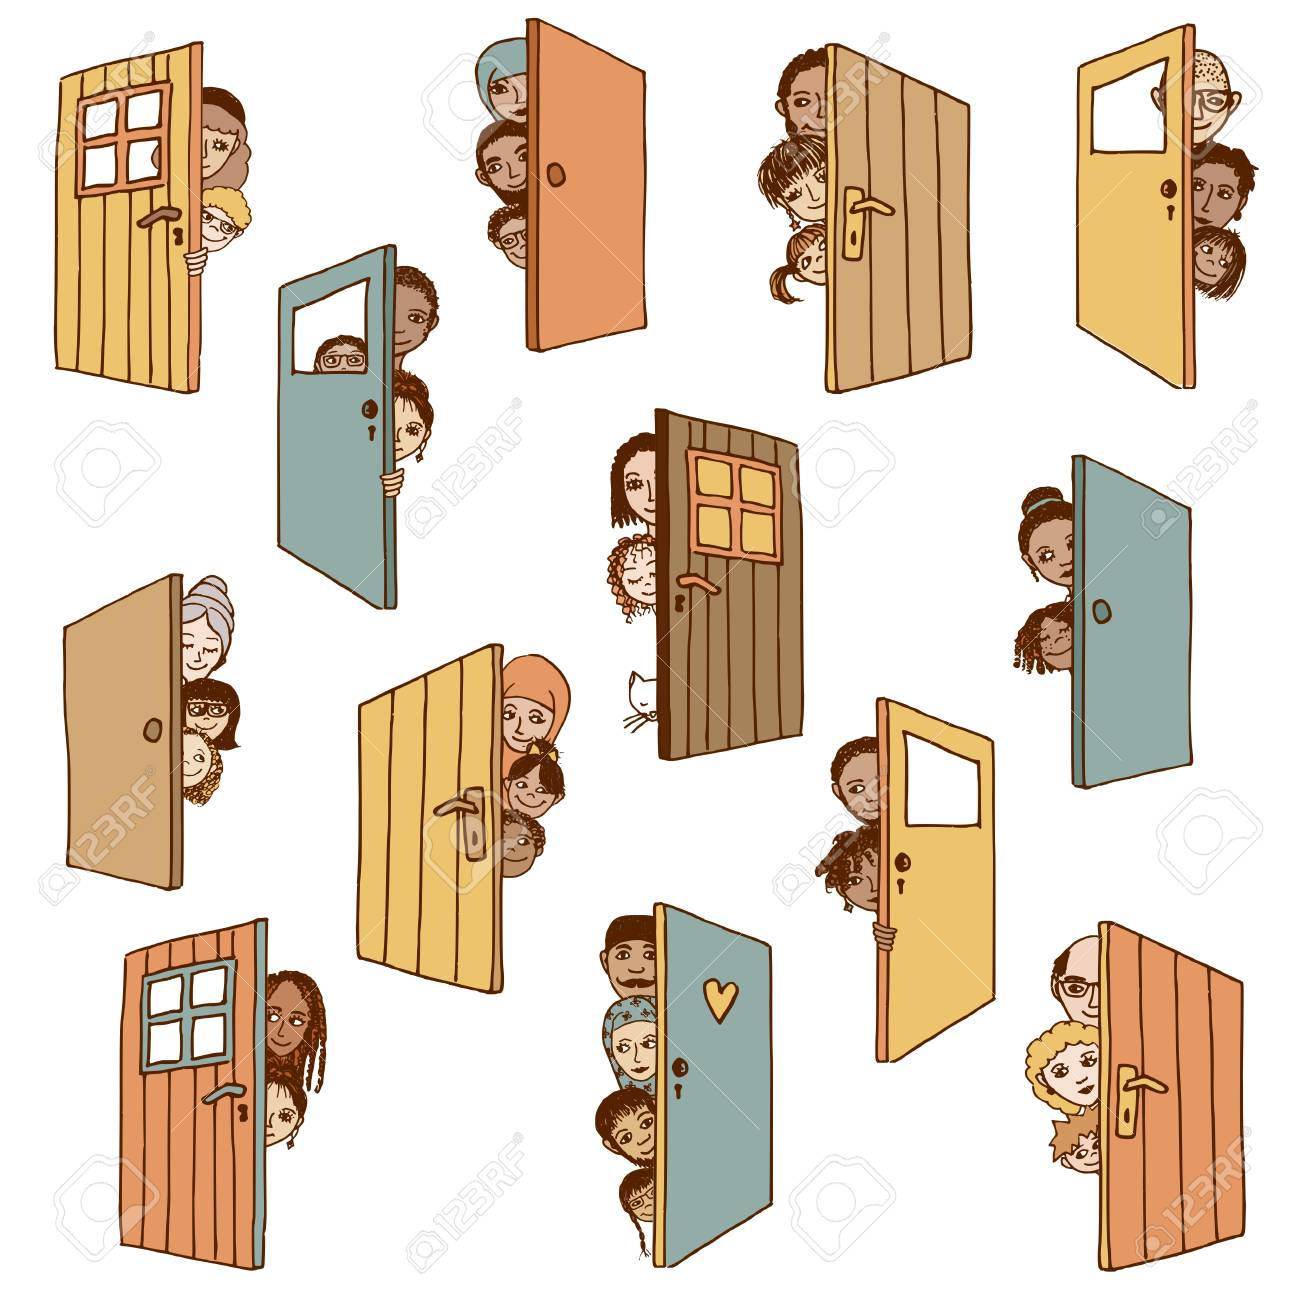 Funny and cute hand drawn illustration of various people and children hiding behind doors or  sc 1 st  123RF.com & Funny And Cute Hand Drawn Illustration Of Various People And ...